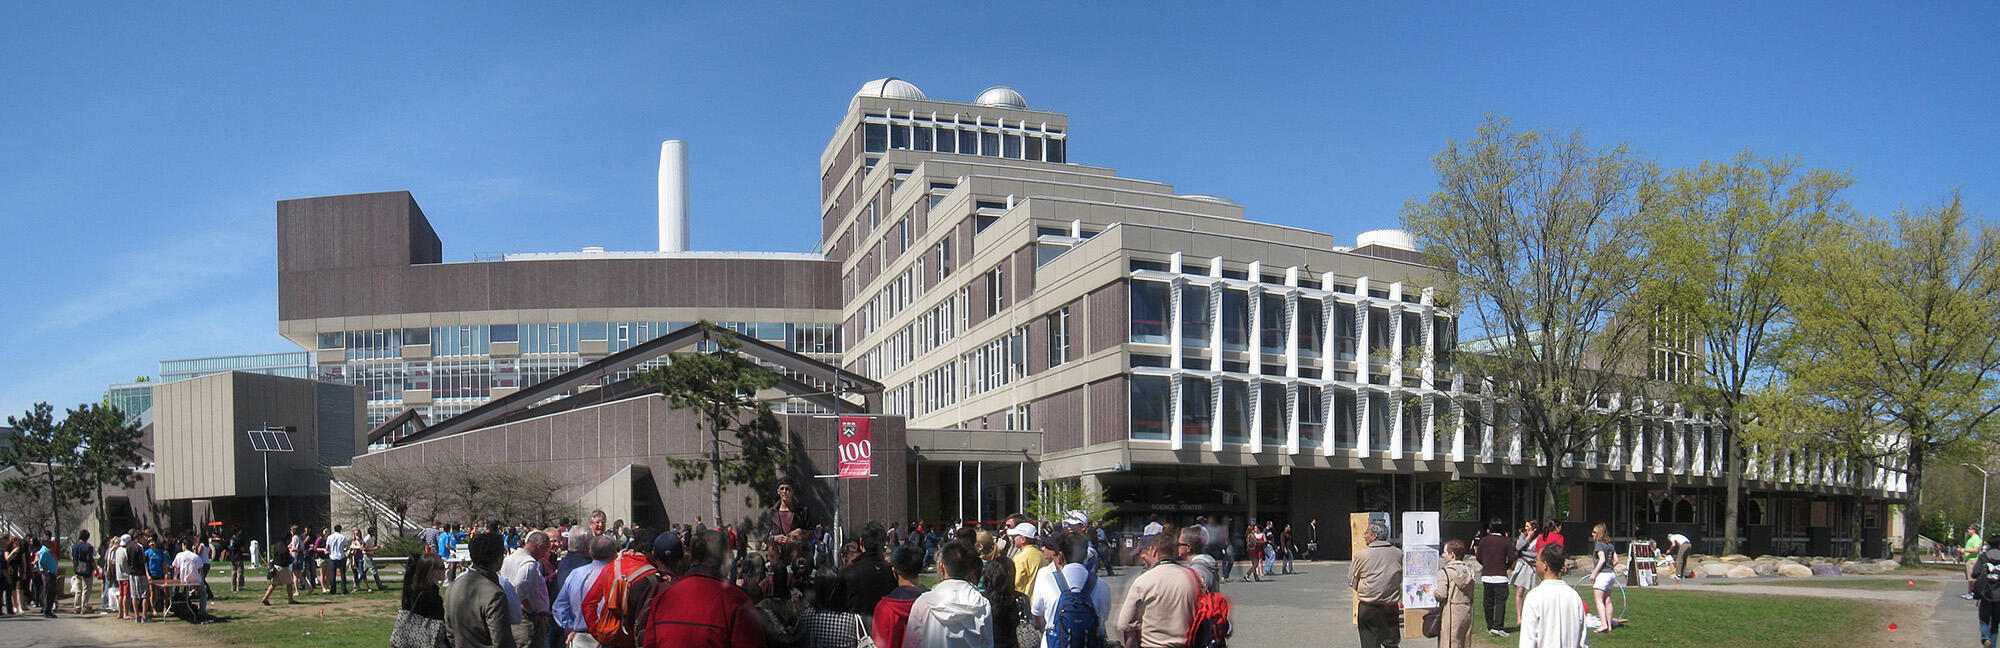 Panorama of the Harvard University Science Center